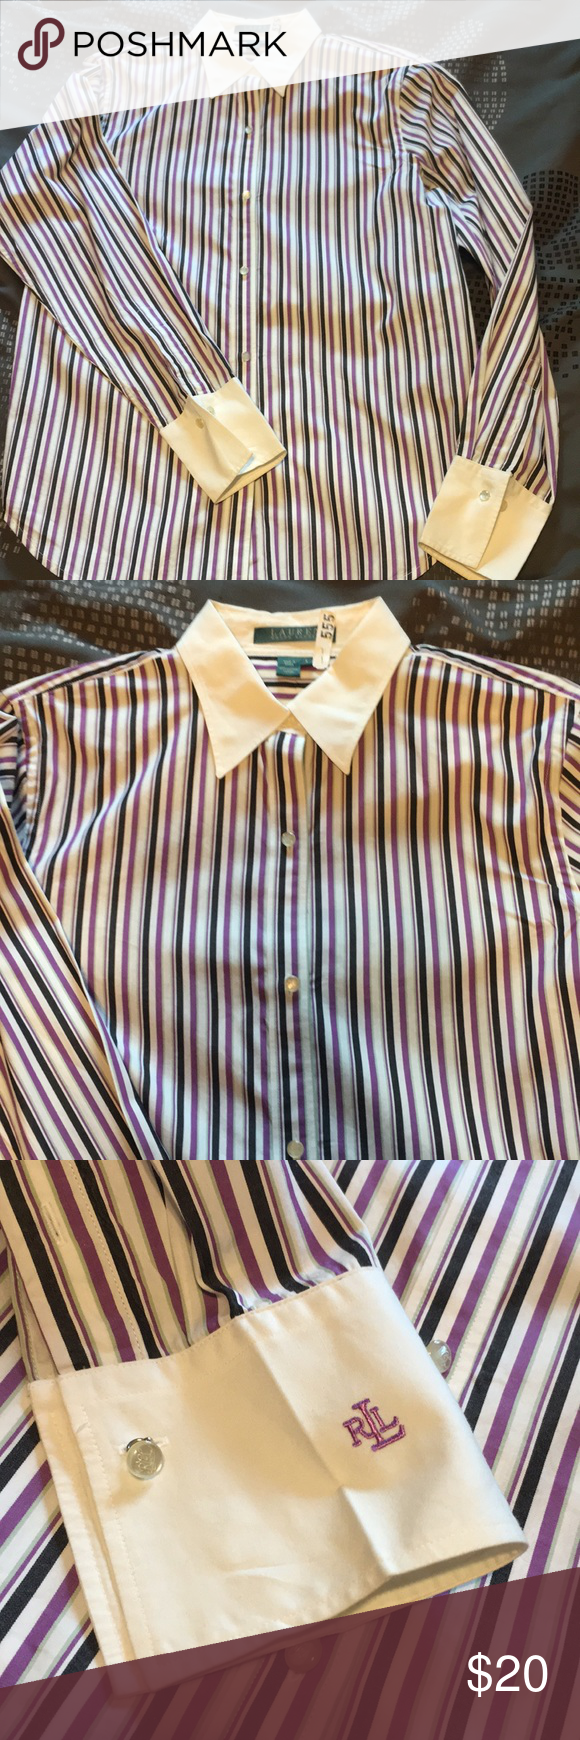 391d02879d Pinstripe Button Down Collared Dress Shirt – EDGE Engineering and ...